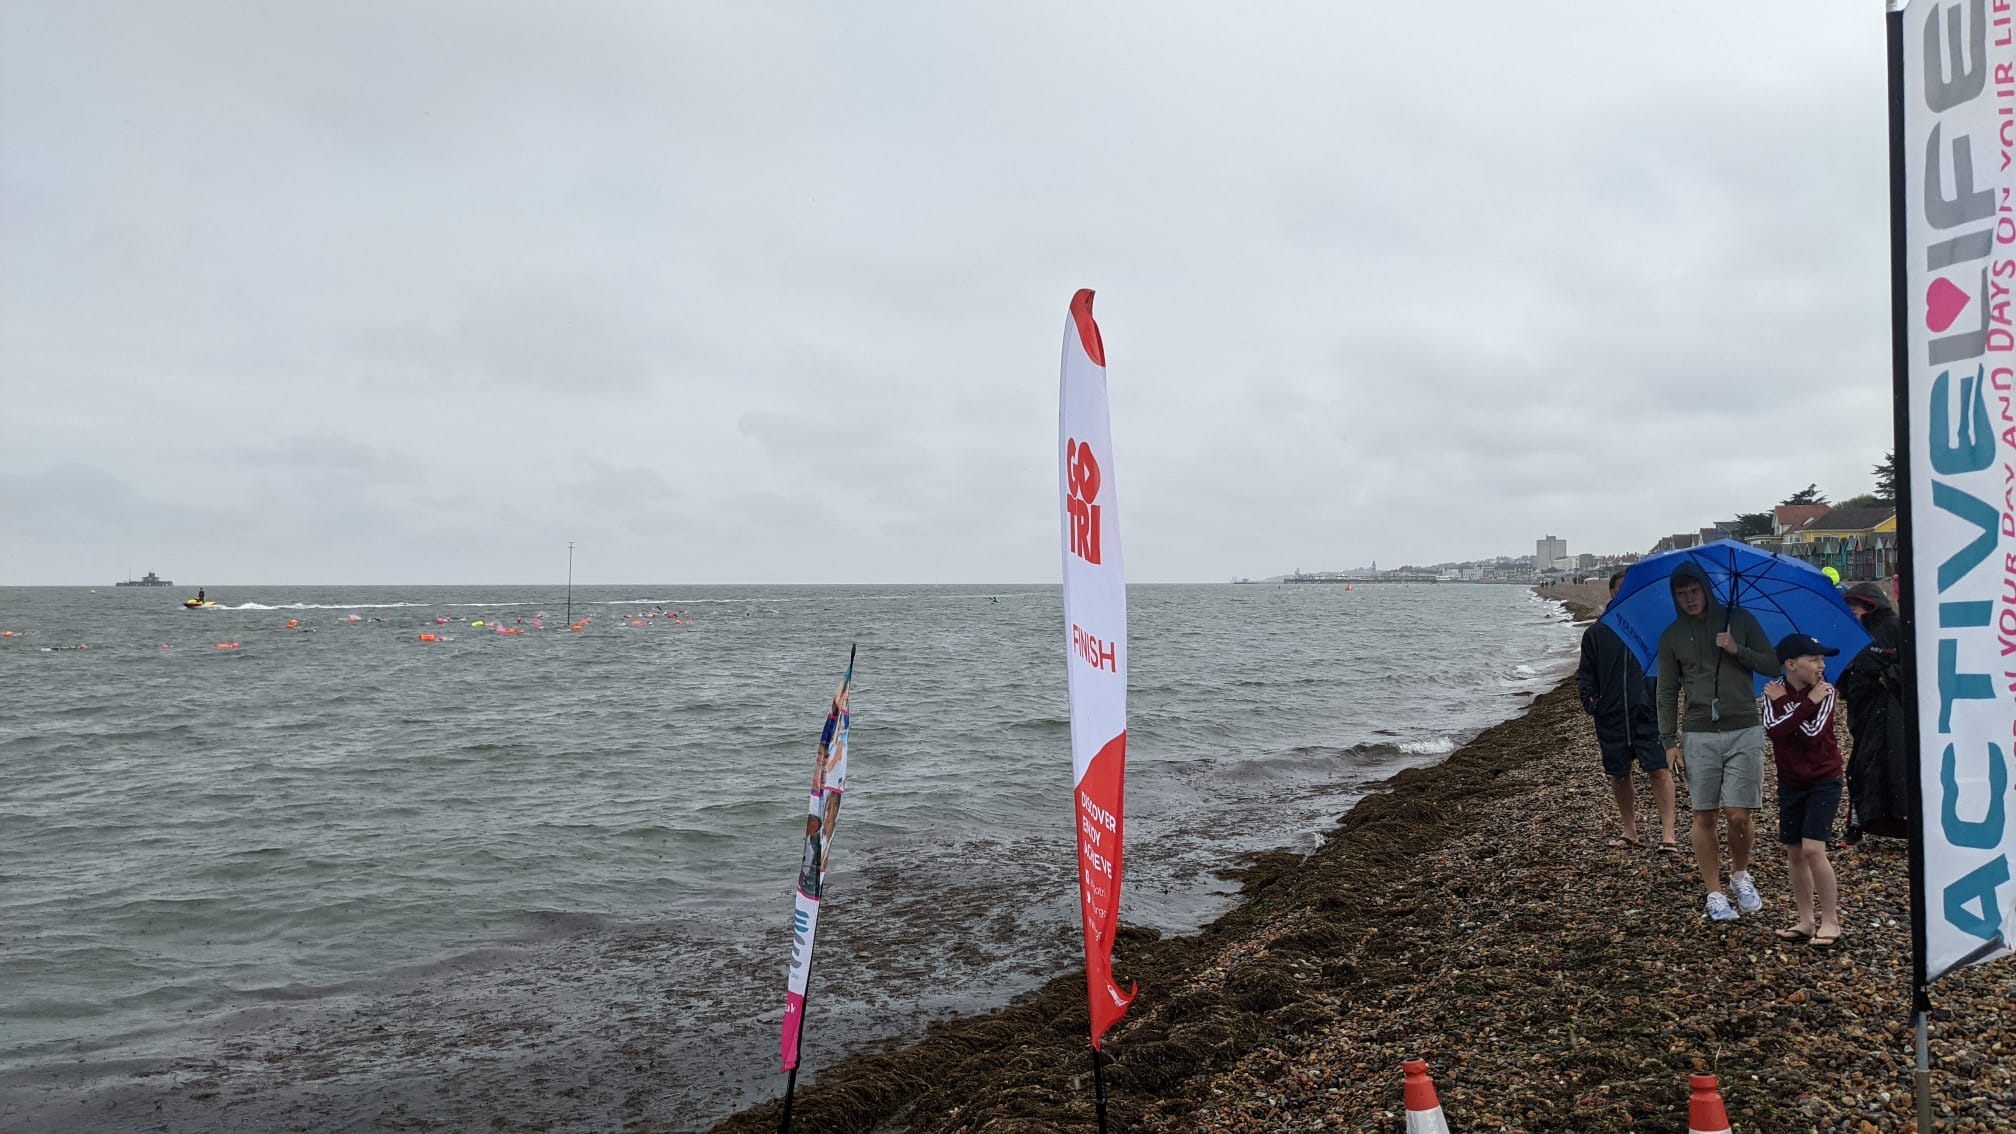 View across the bay from the start line